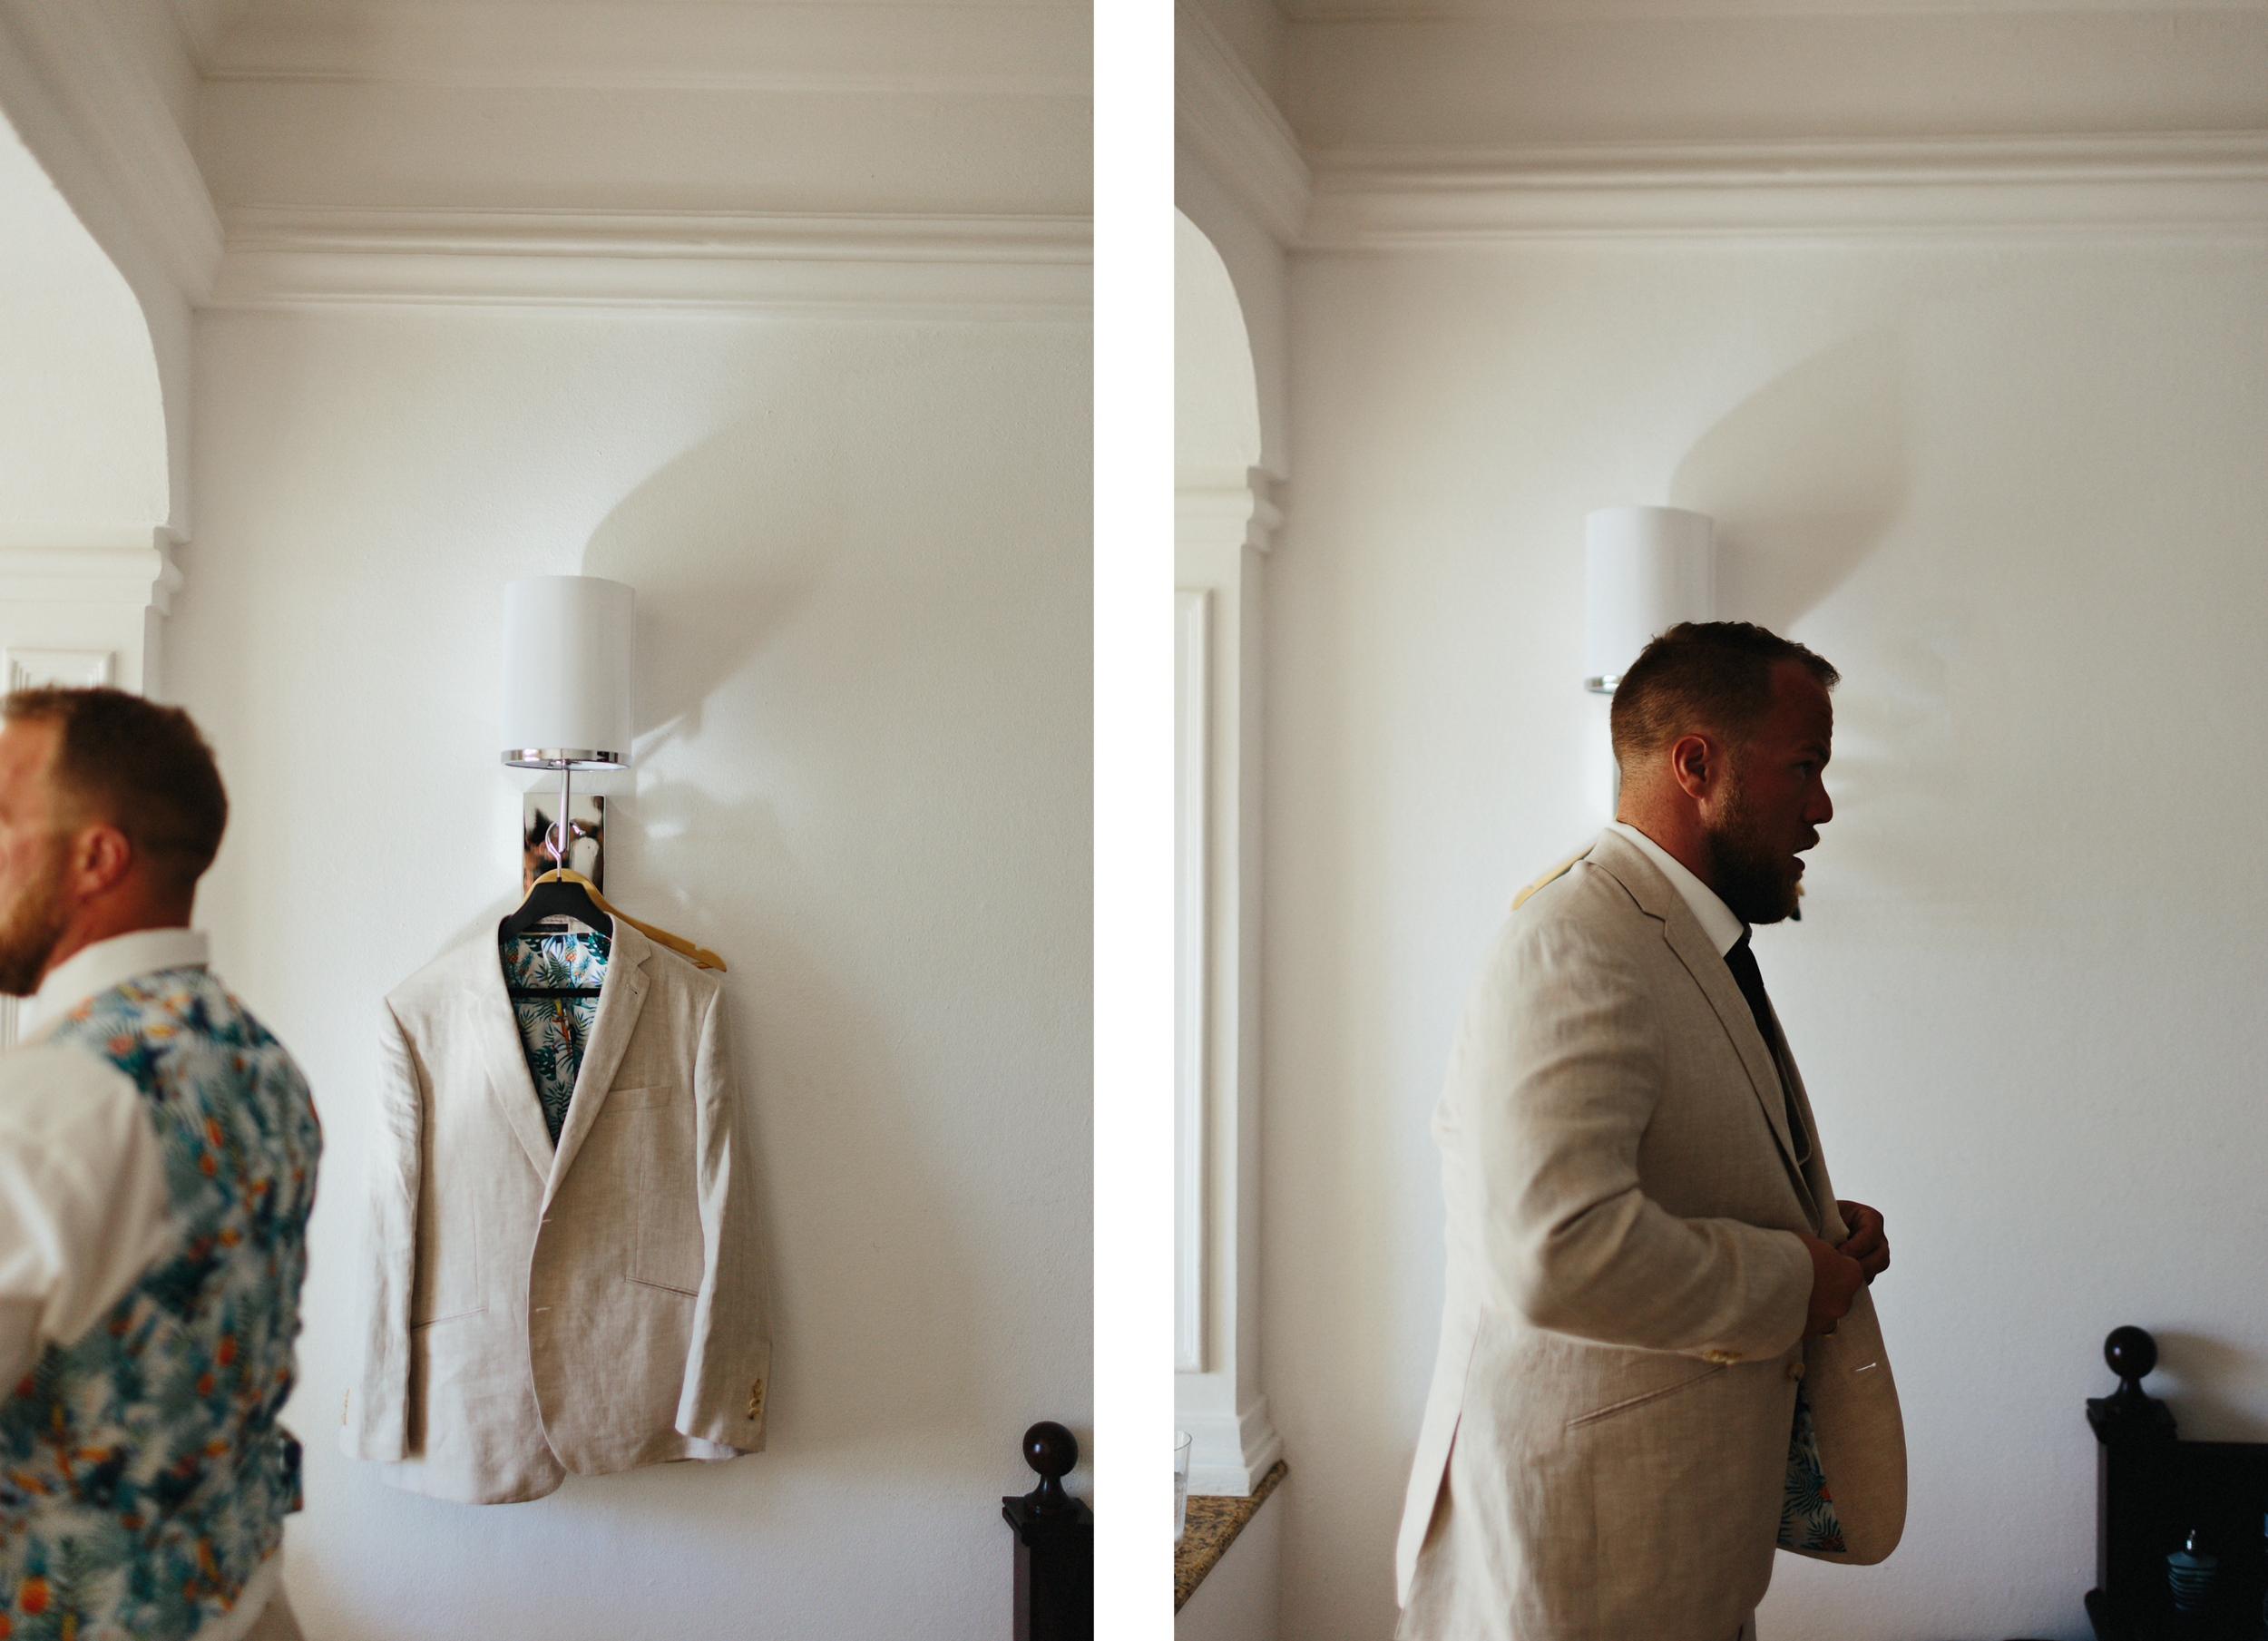 spread-2-cabo-san-lucas-wedding-travelling-destination-wedding-photographer-toronto-wedding-photographers-3b-photography-hipster-trendy-documentary-style-mexico-wedding-groom-getting-ready-details-tying-tie-indochino-suit.png